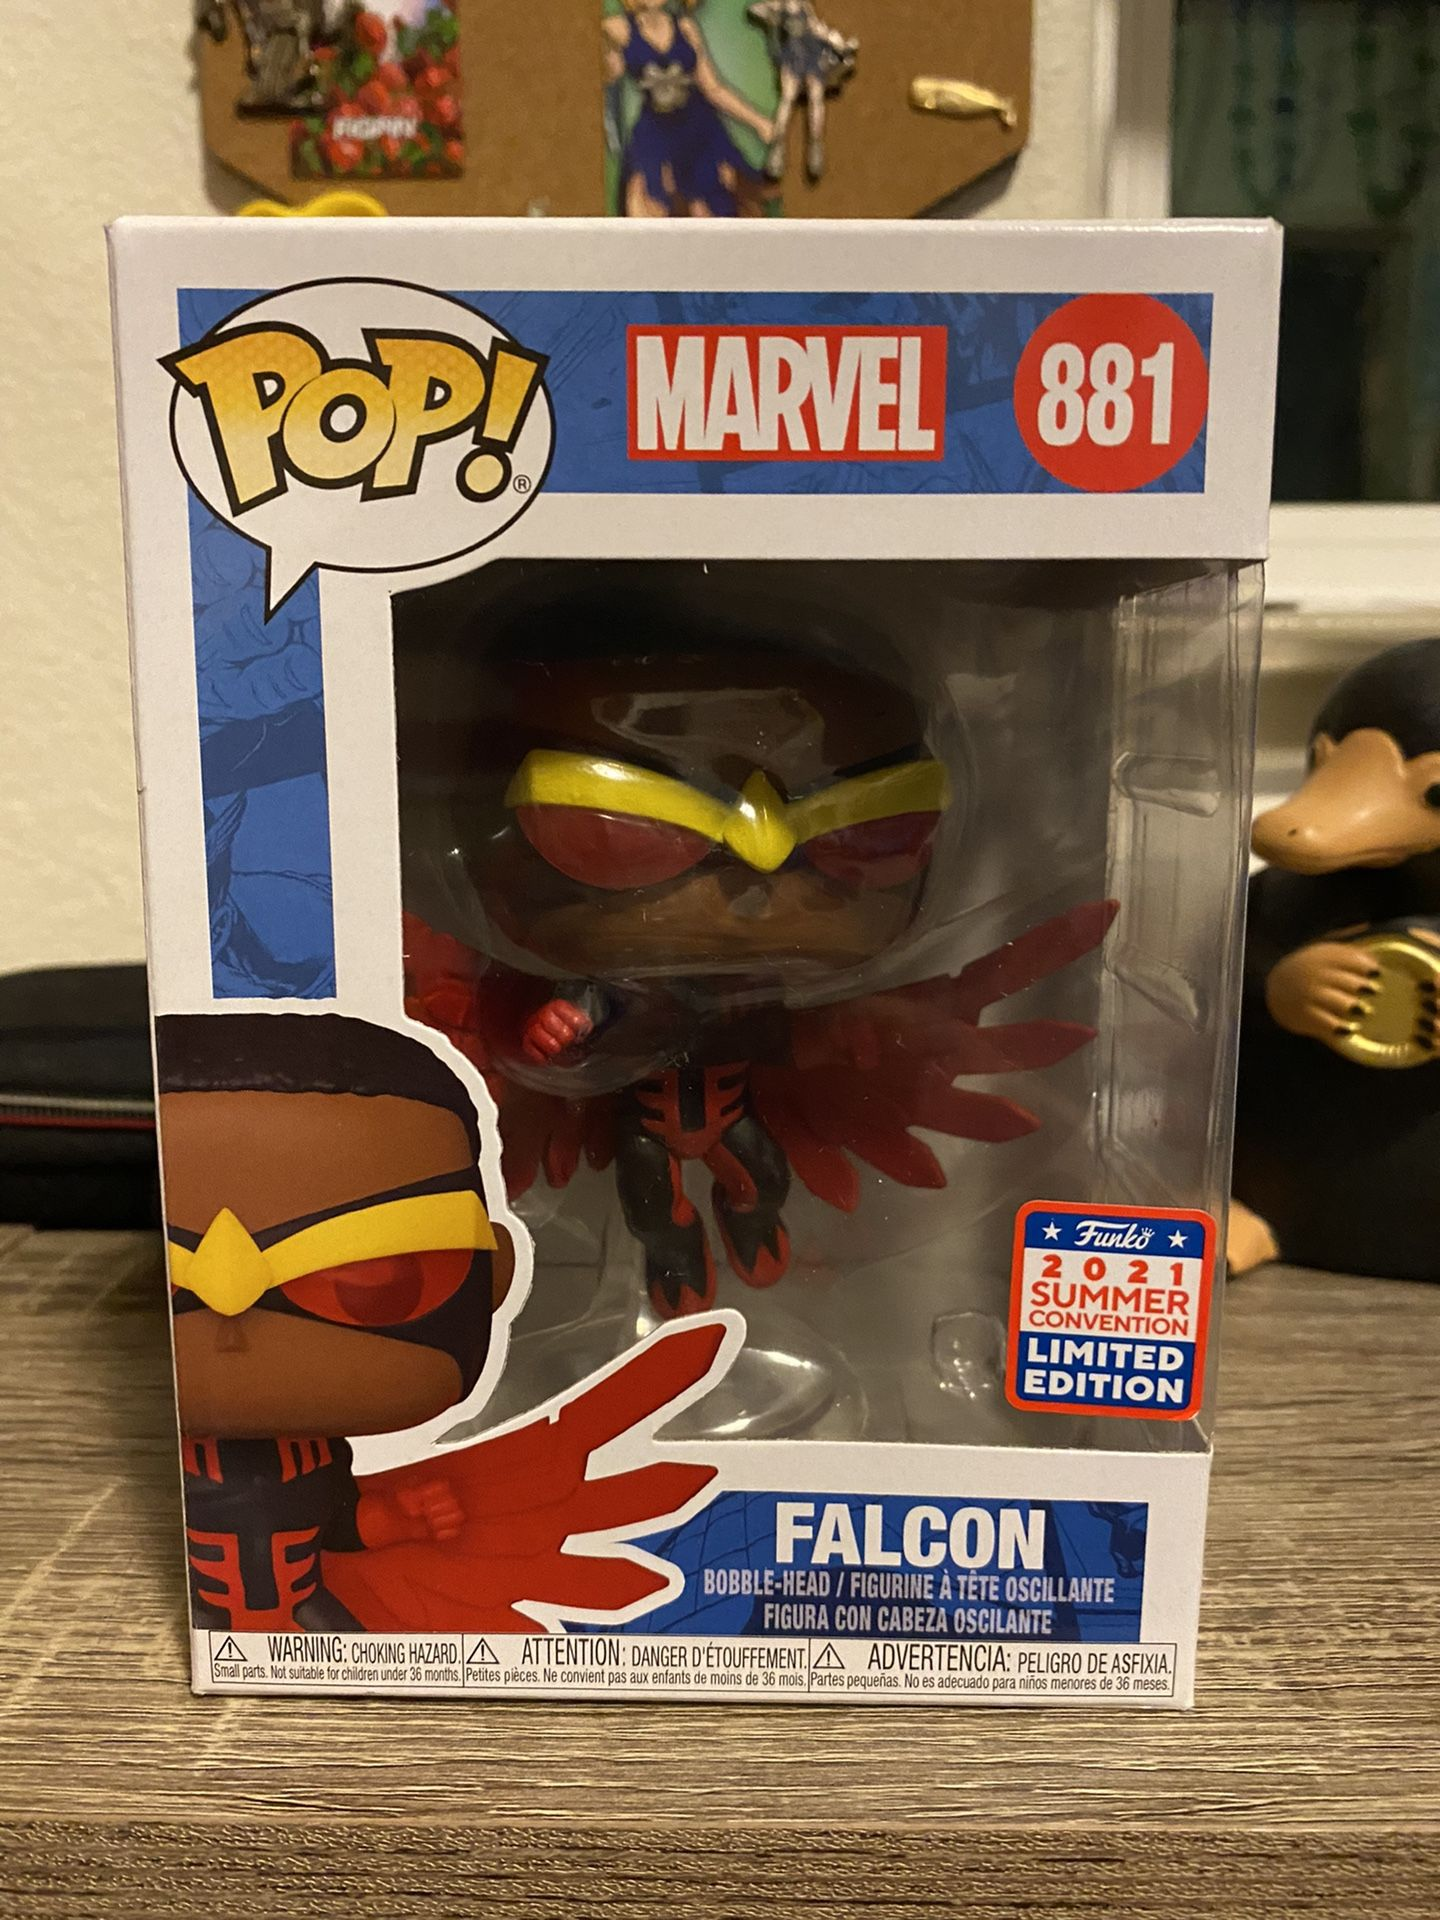 Summer Convention Falcon (Red Suit)